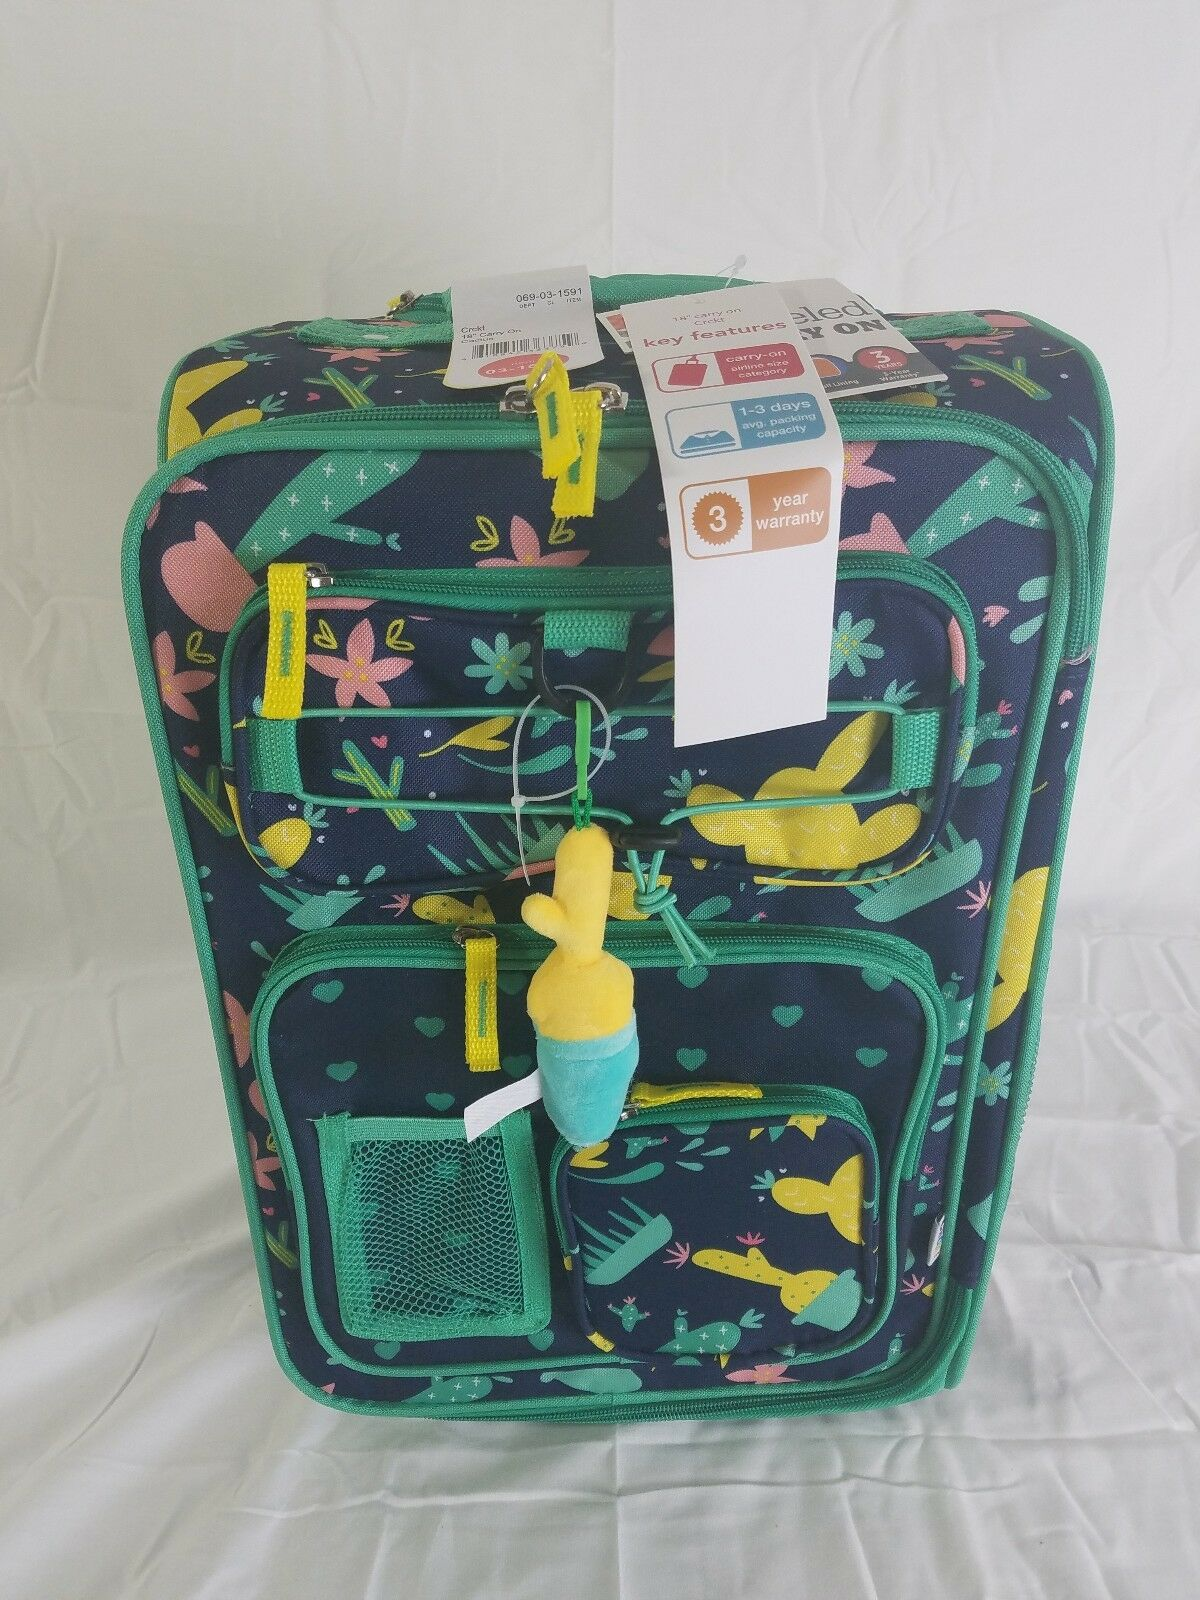 Spinner Carry On Luggage Crckt 18 Kids Star